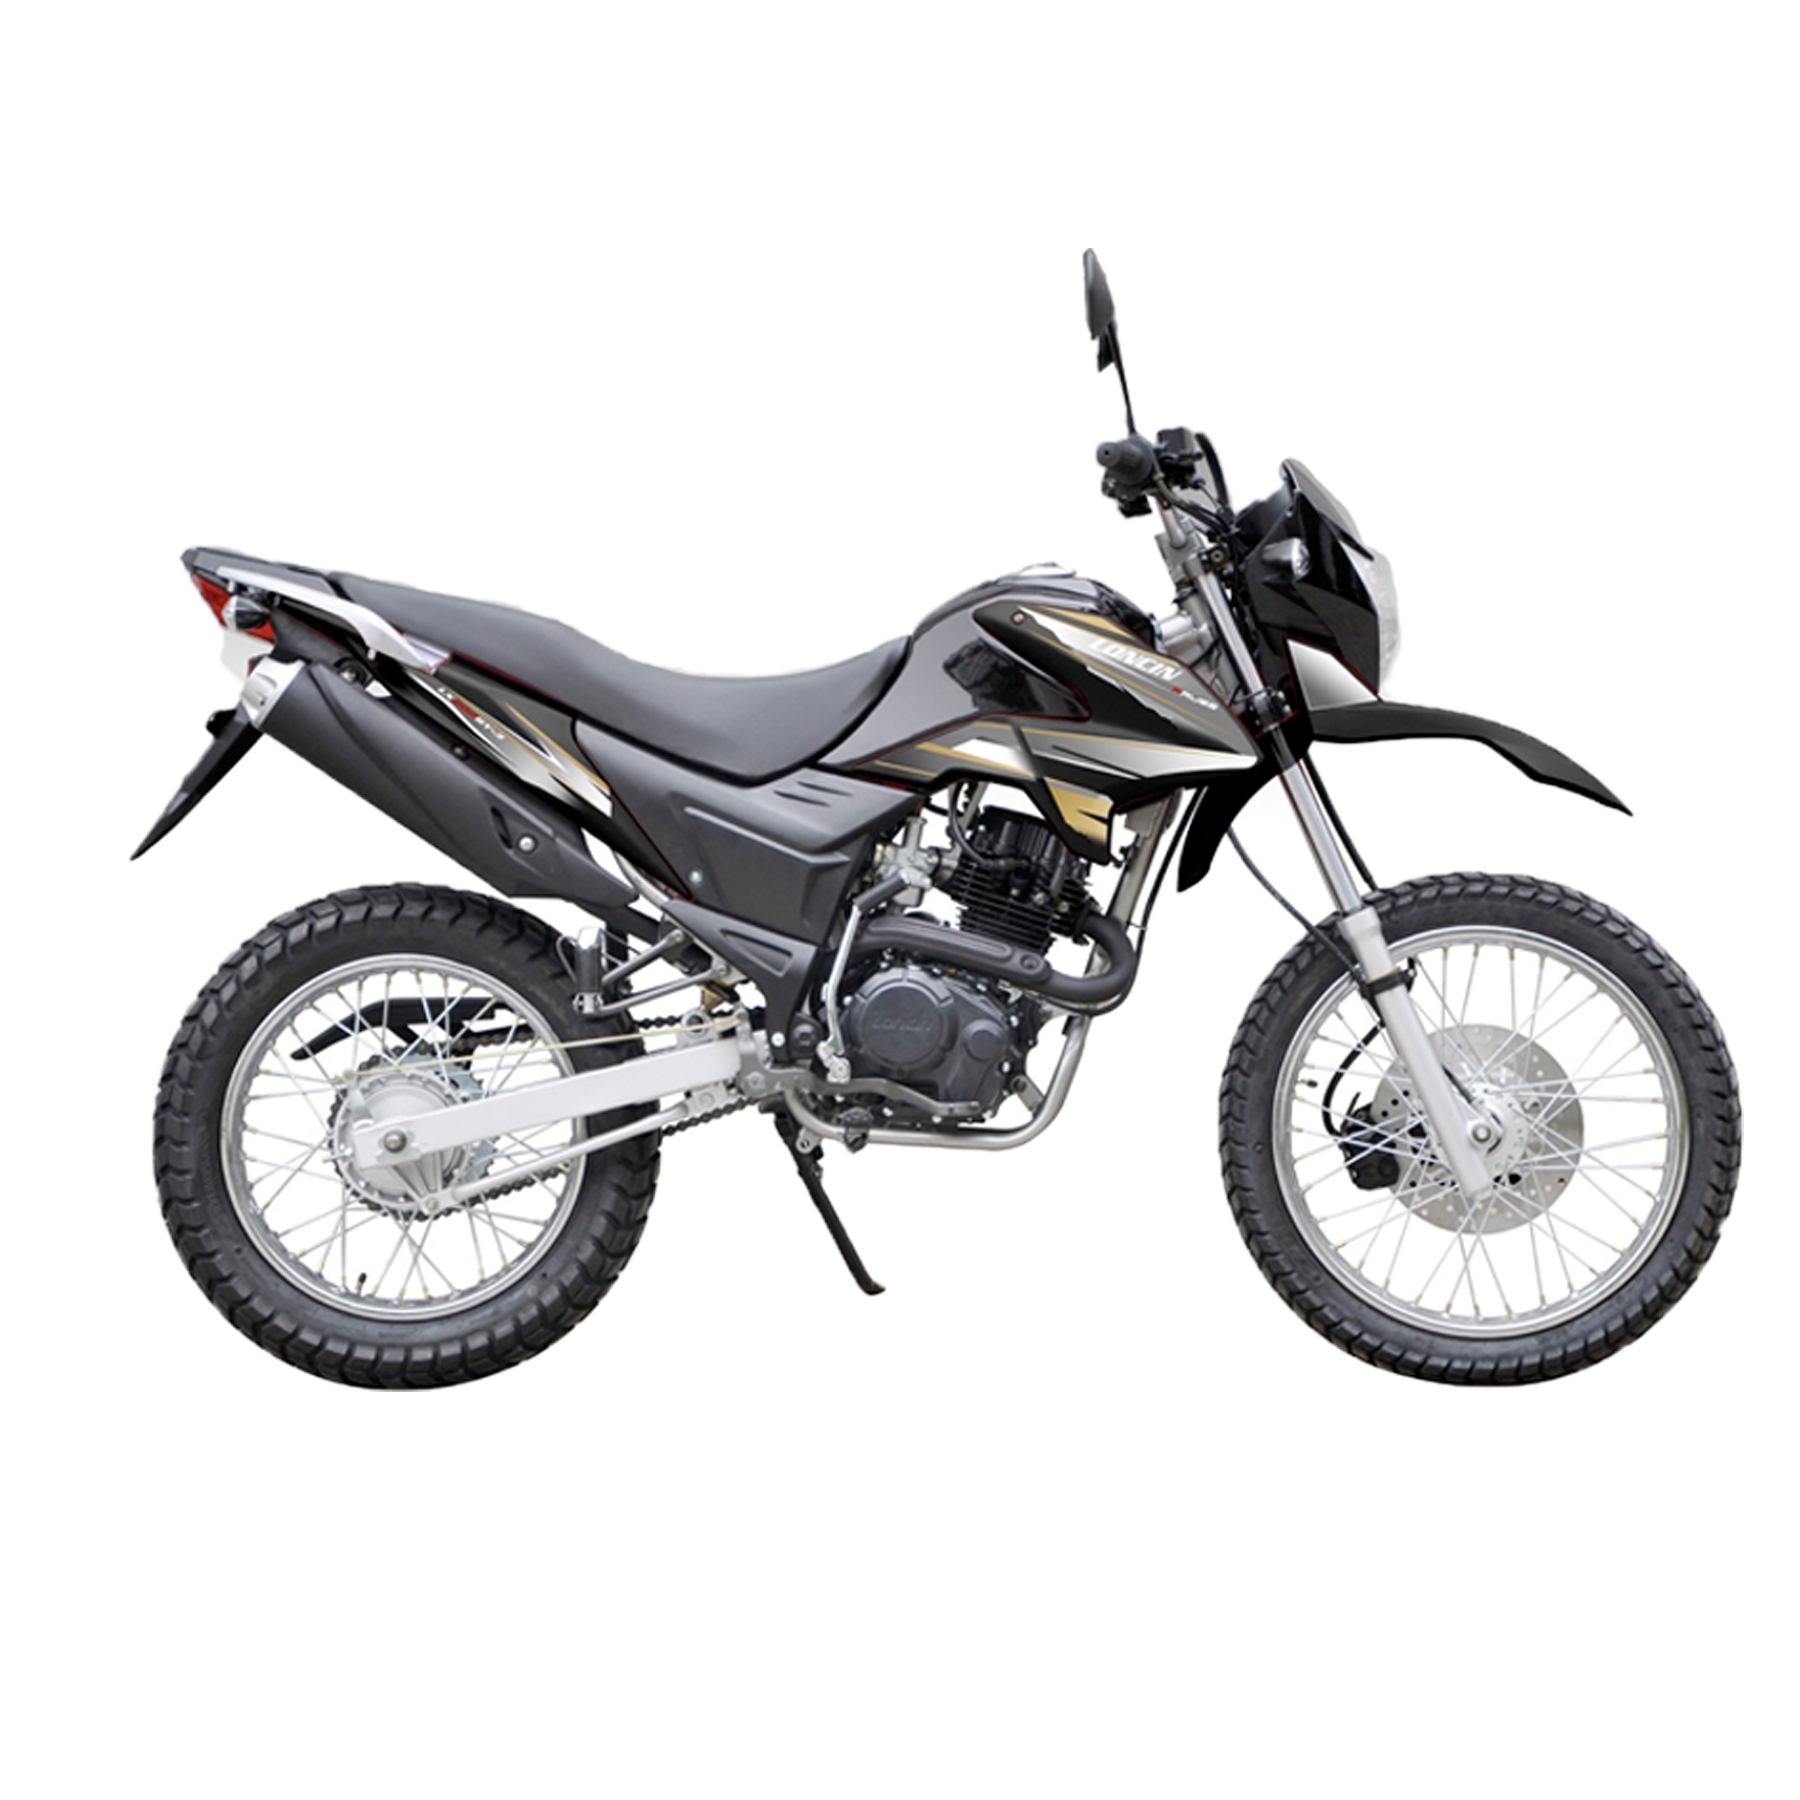 MOTORCYCLE LONCIN PRUSS 200 CC